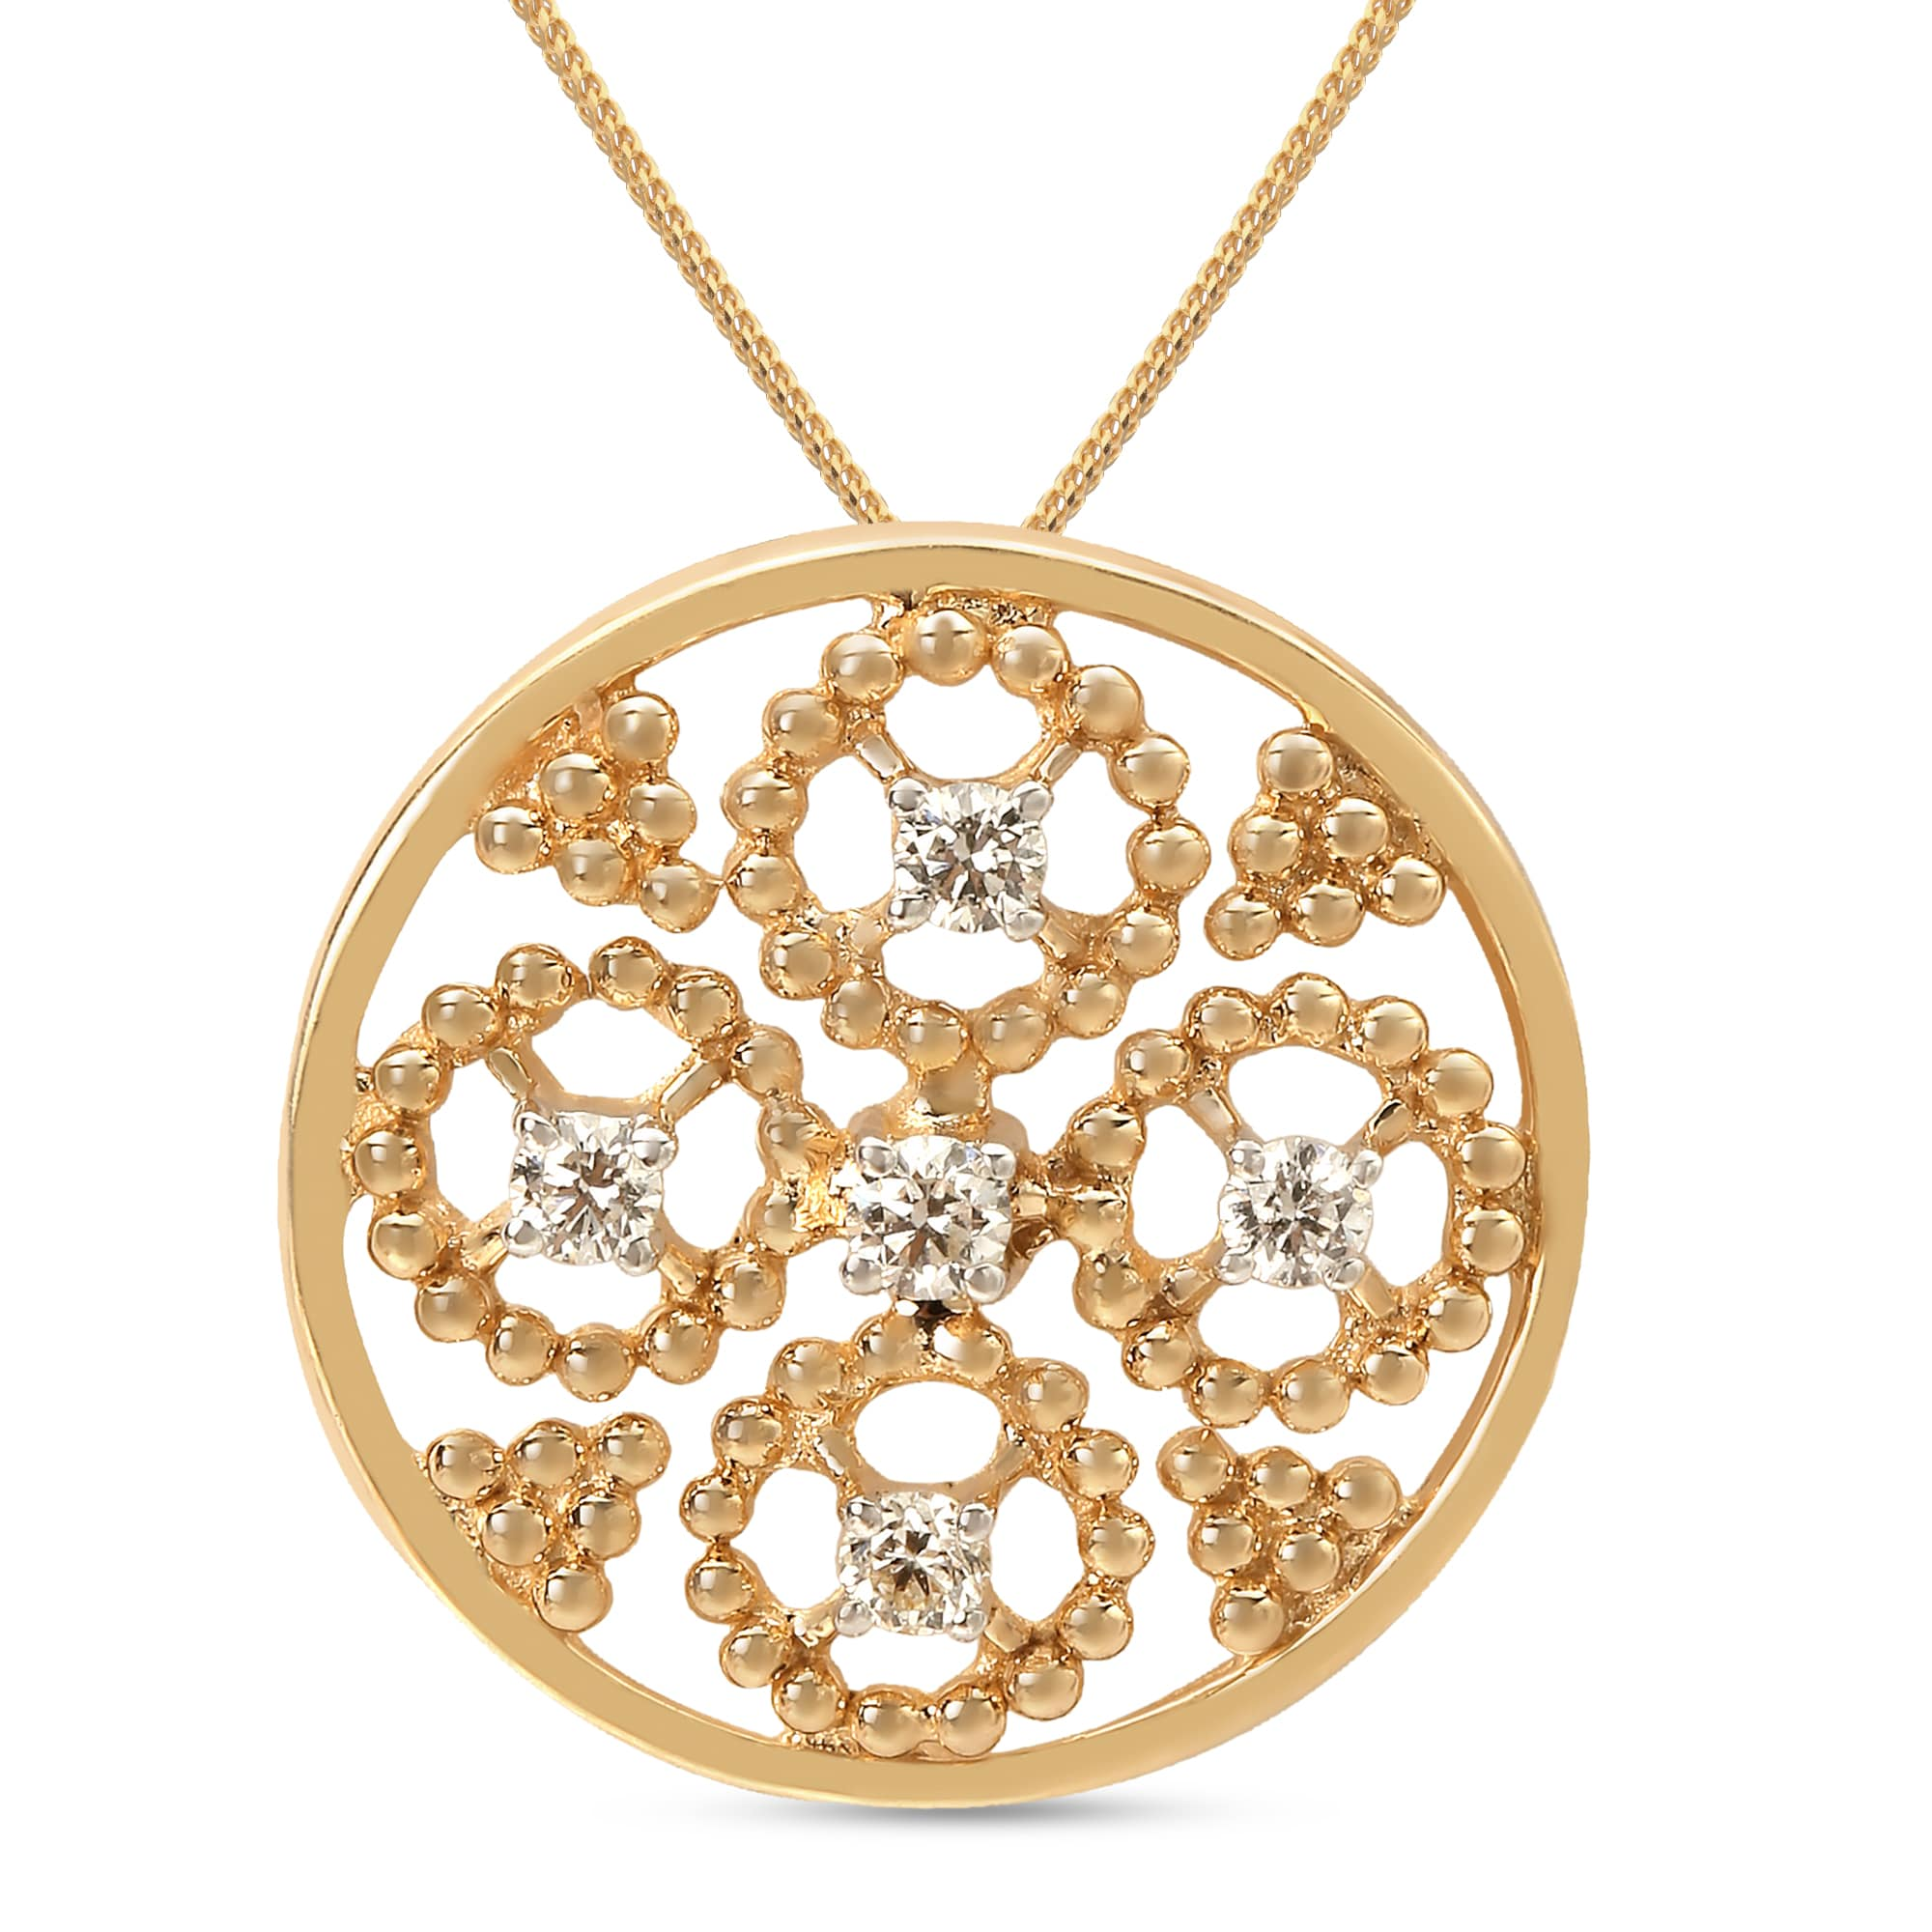 Mia by Tanishq Friends of Bride 14KT Yellow Gold Diamond Pendant with Oval  Design